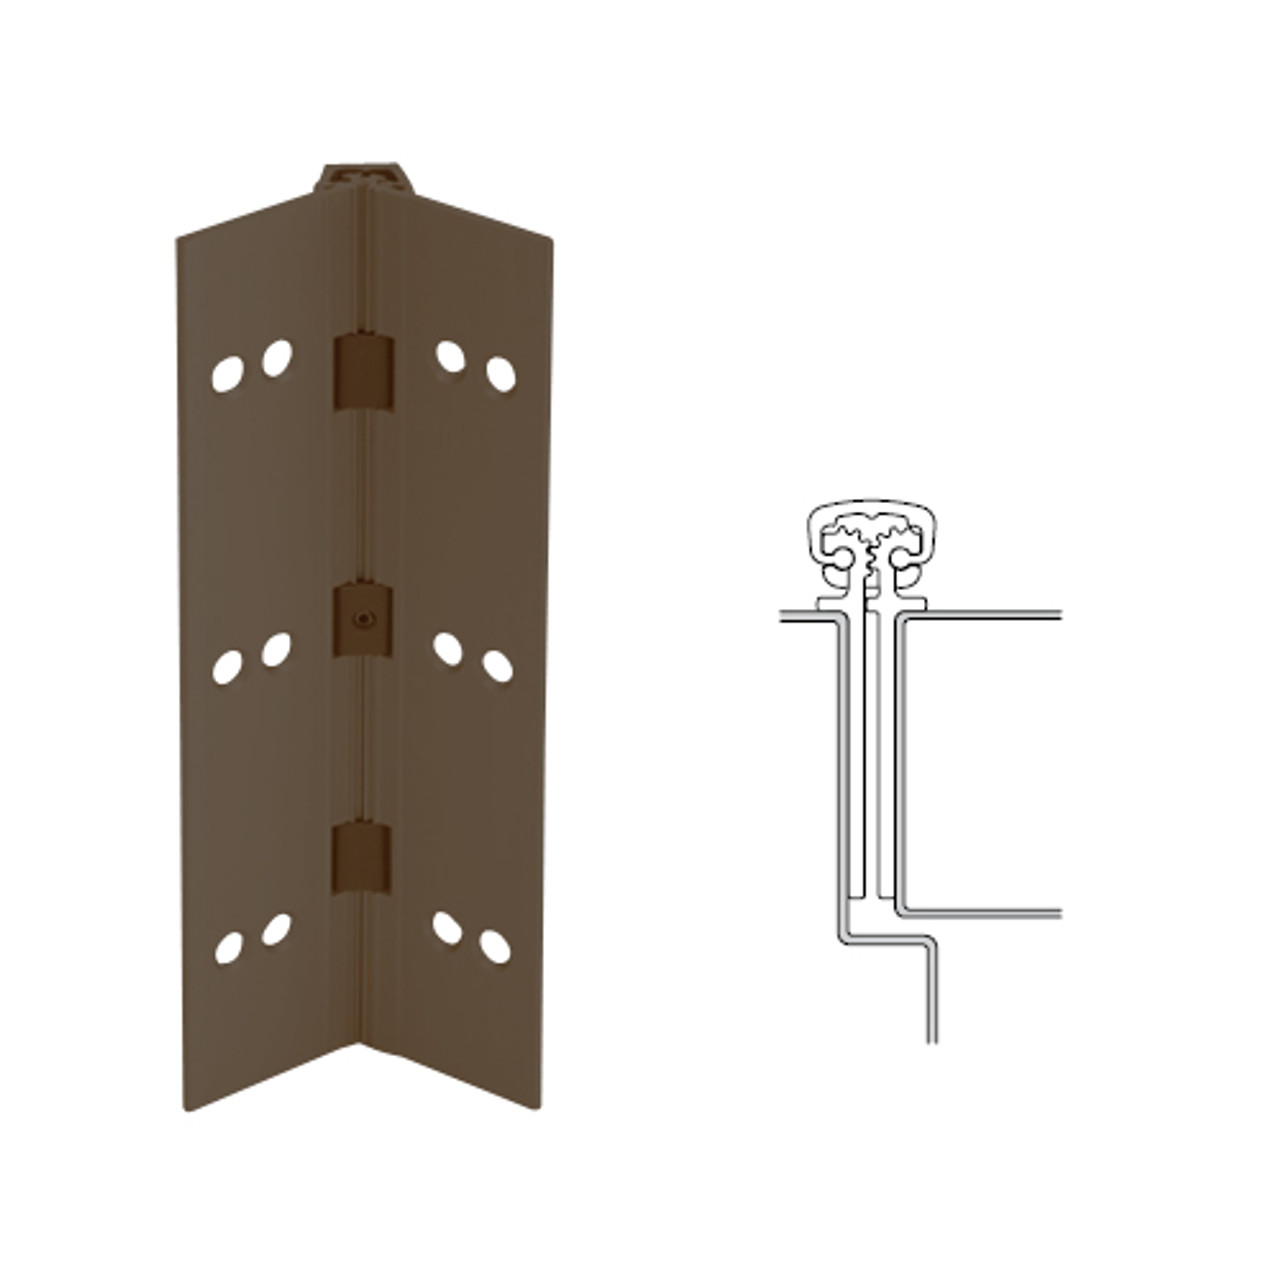 027XY-313AN-83-SECWDHM IVES Full Mortise Continuous Geared Hinges with Security Screws - Hex Pin Drive in Dark Bronze Anodized